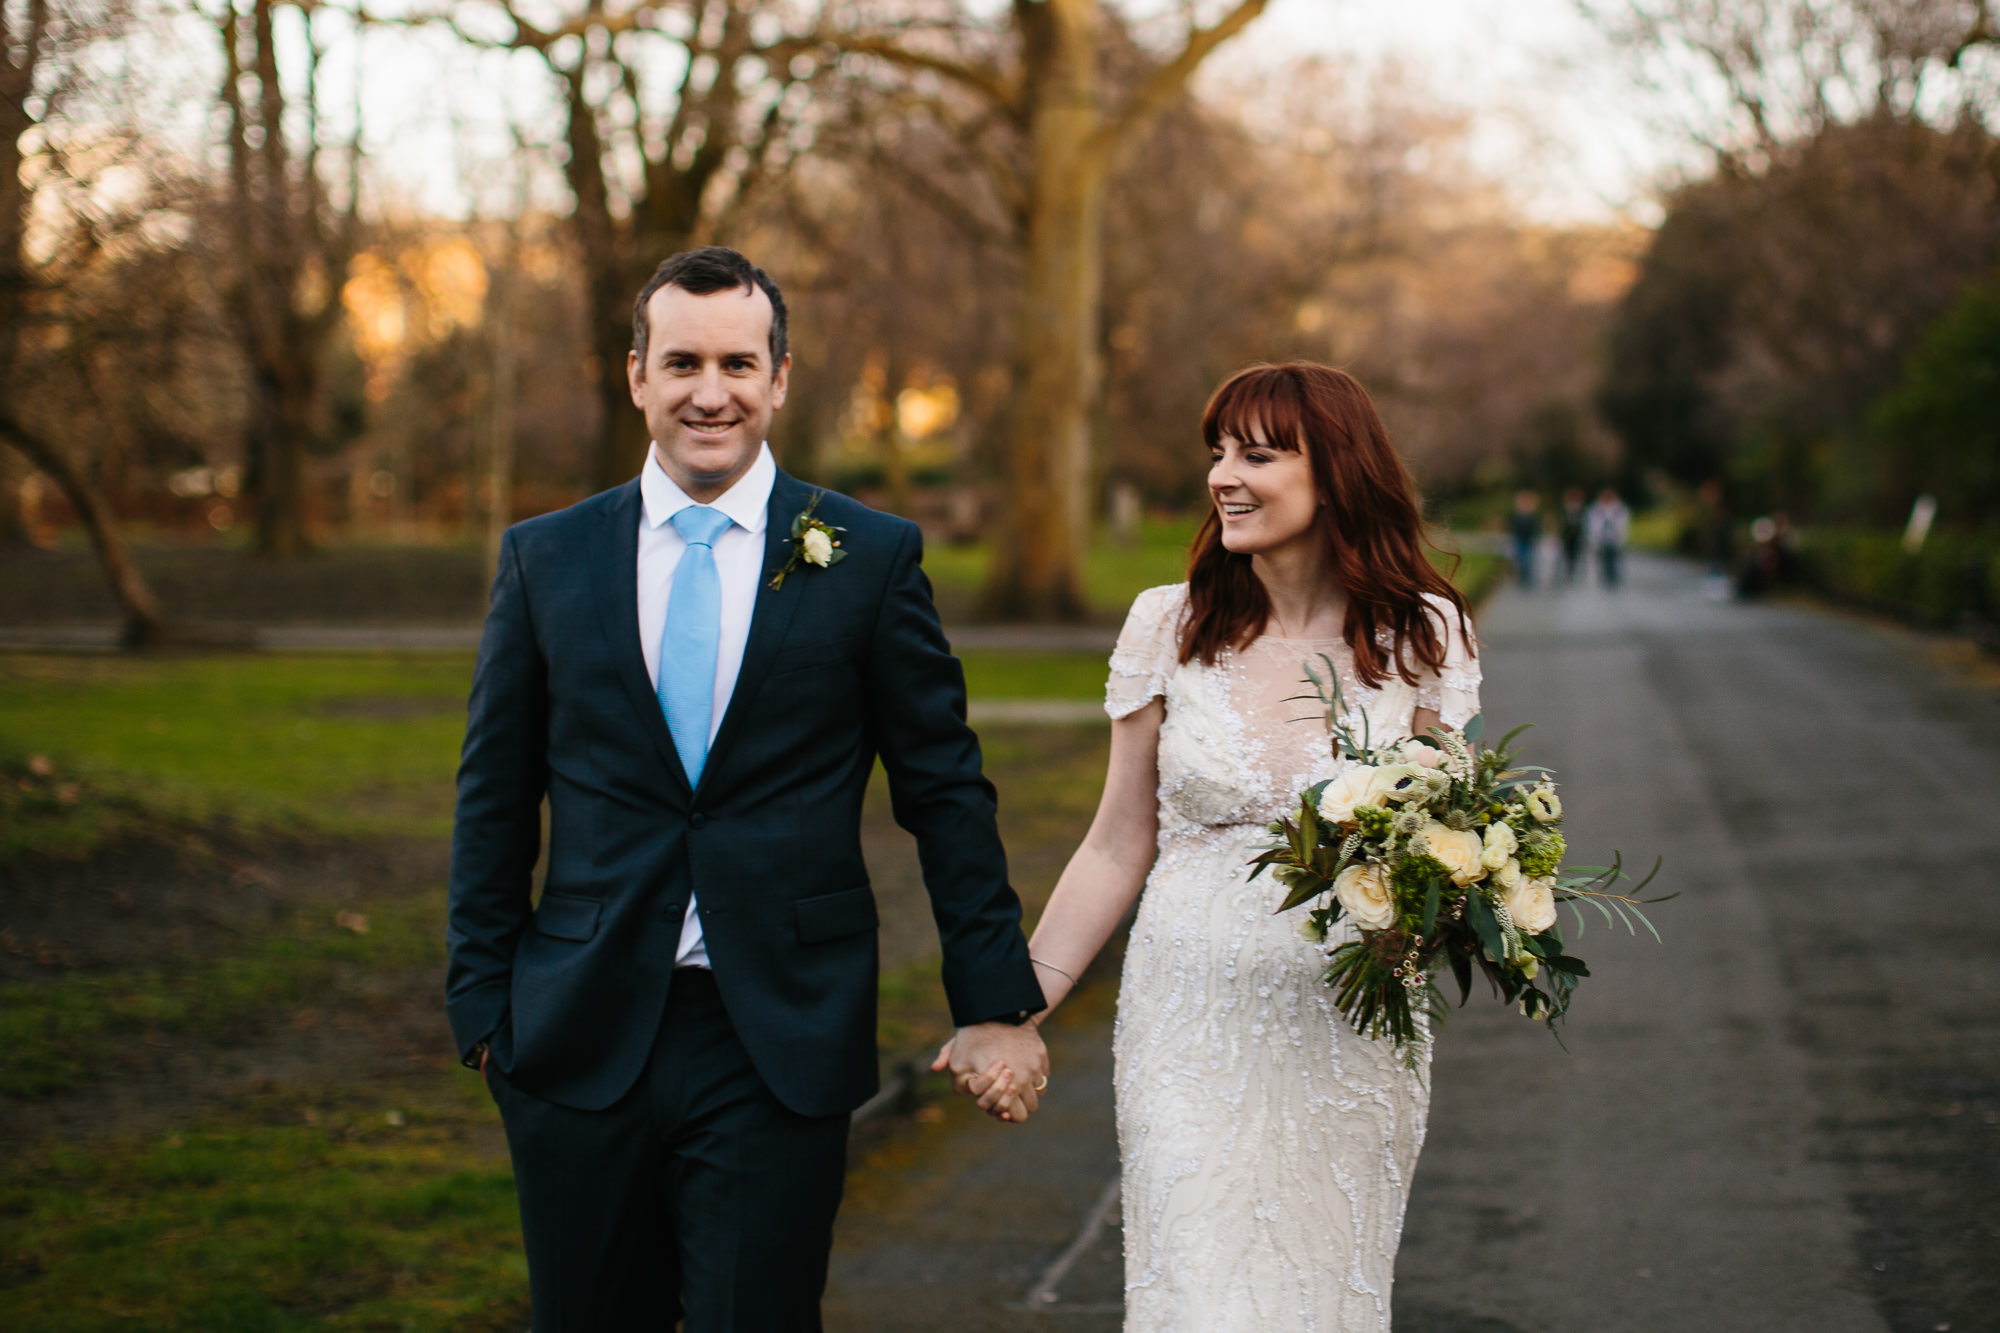 Clairebyrnephotography-slideshow-Susan & Johnny-86.jpg